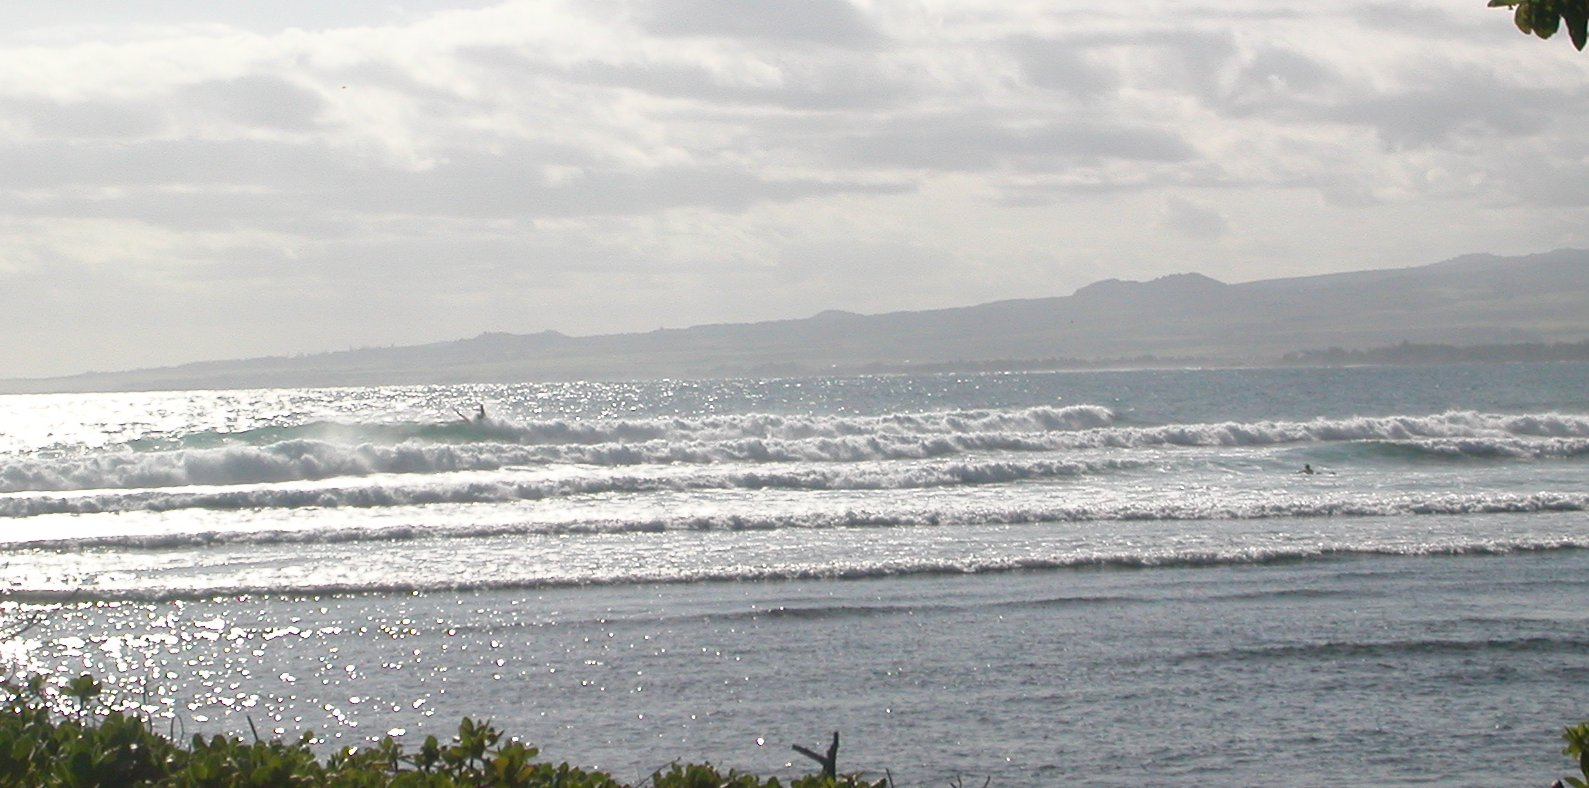 seedicksurf.com - Maui Daily Surf shots and surf report!!